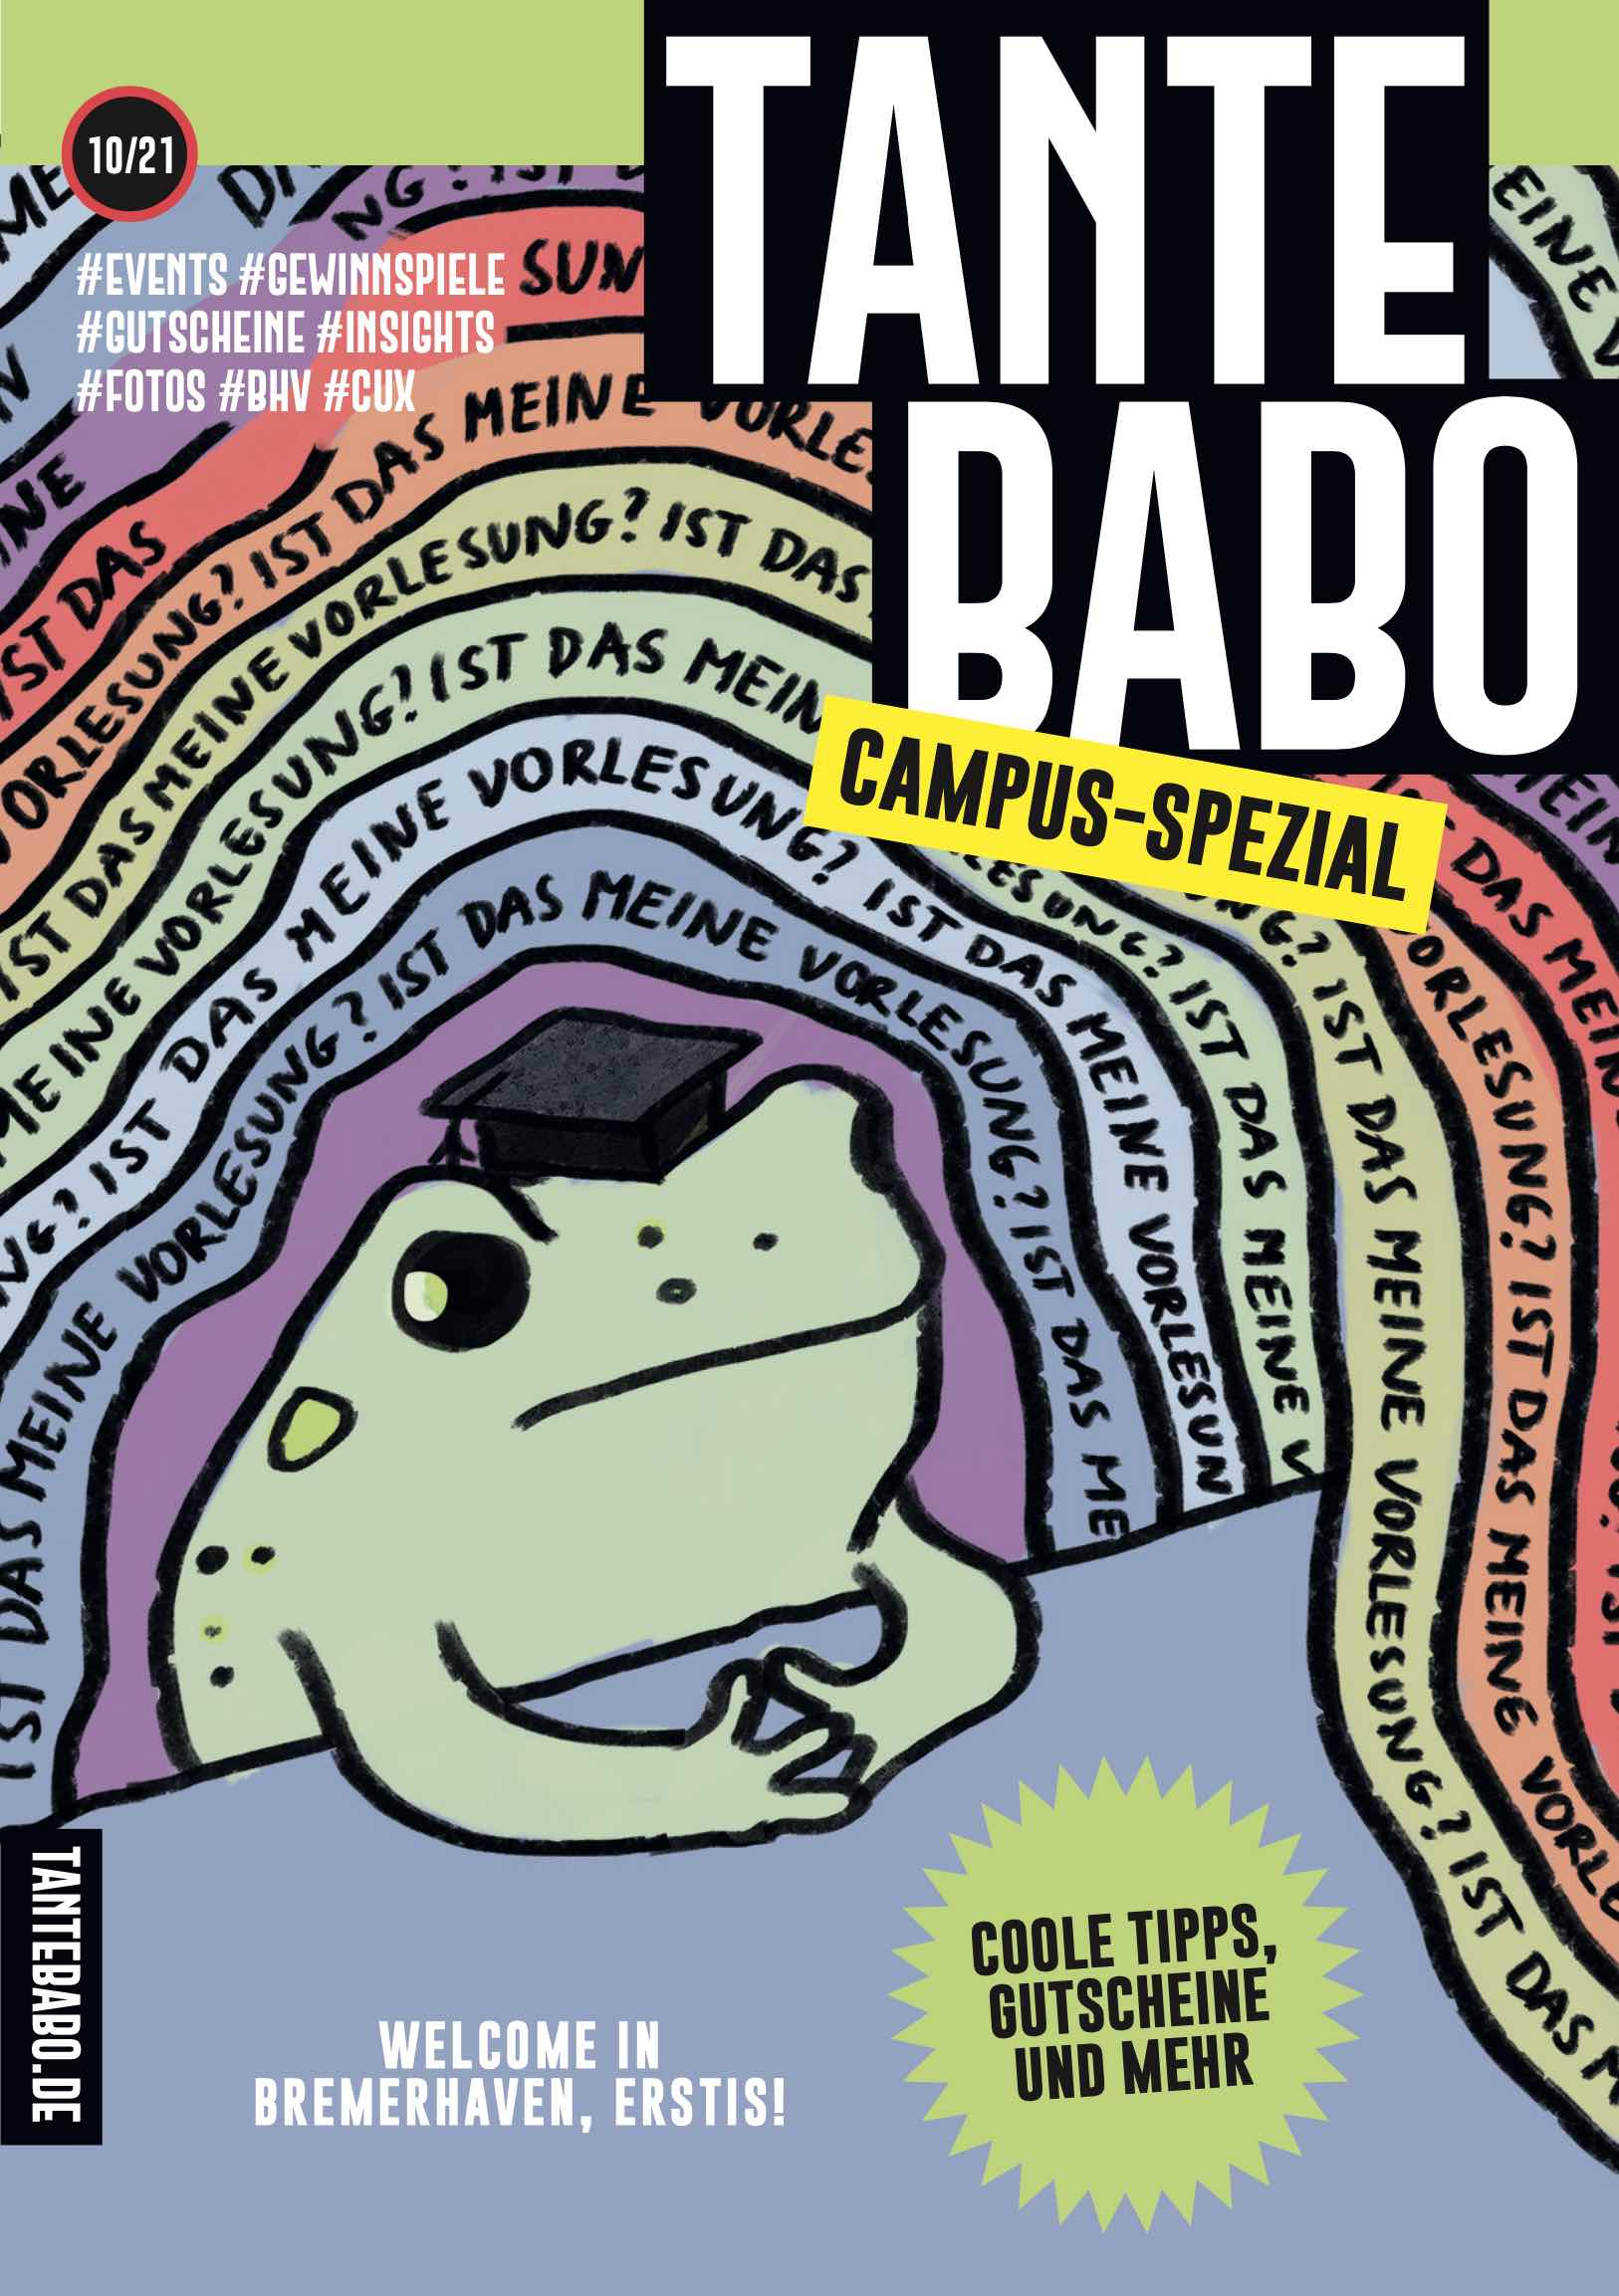 TANTE BABO Campus Special Cover